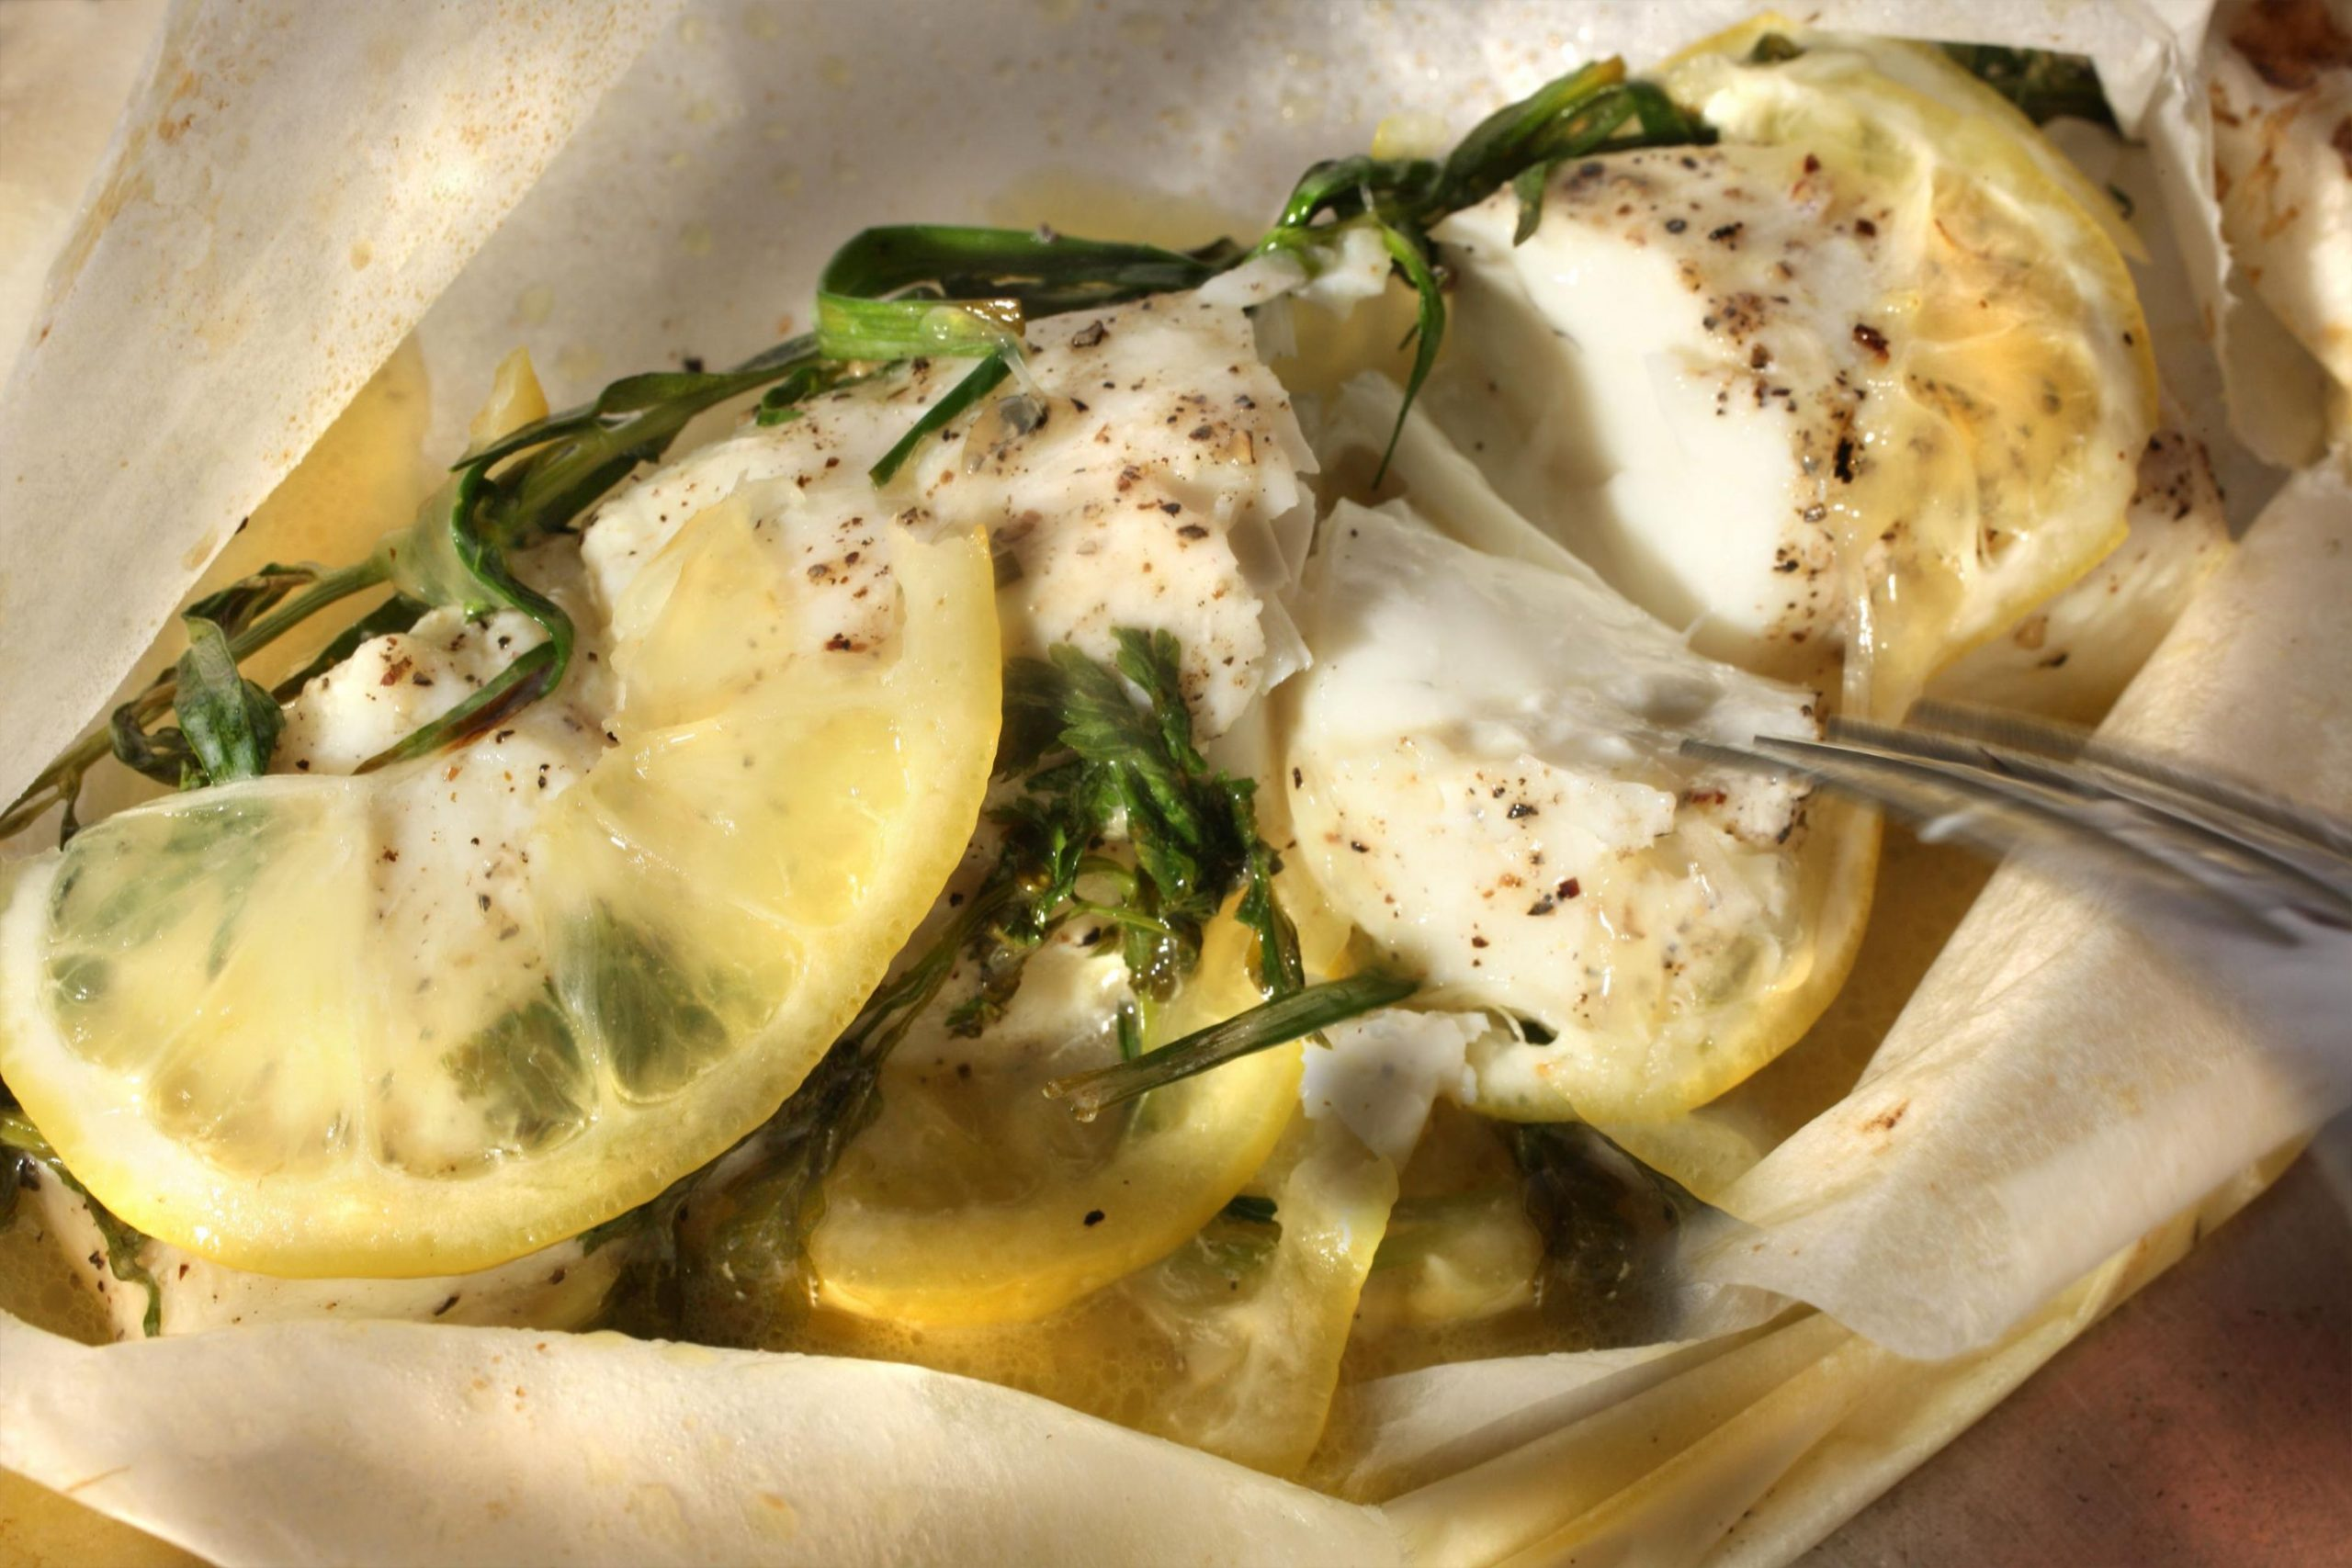 Easy Fish Baked in Parchment - Recipes Fish In Parchment Paper